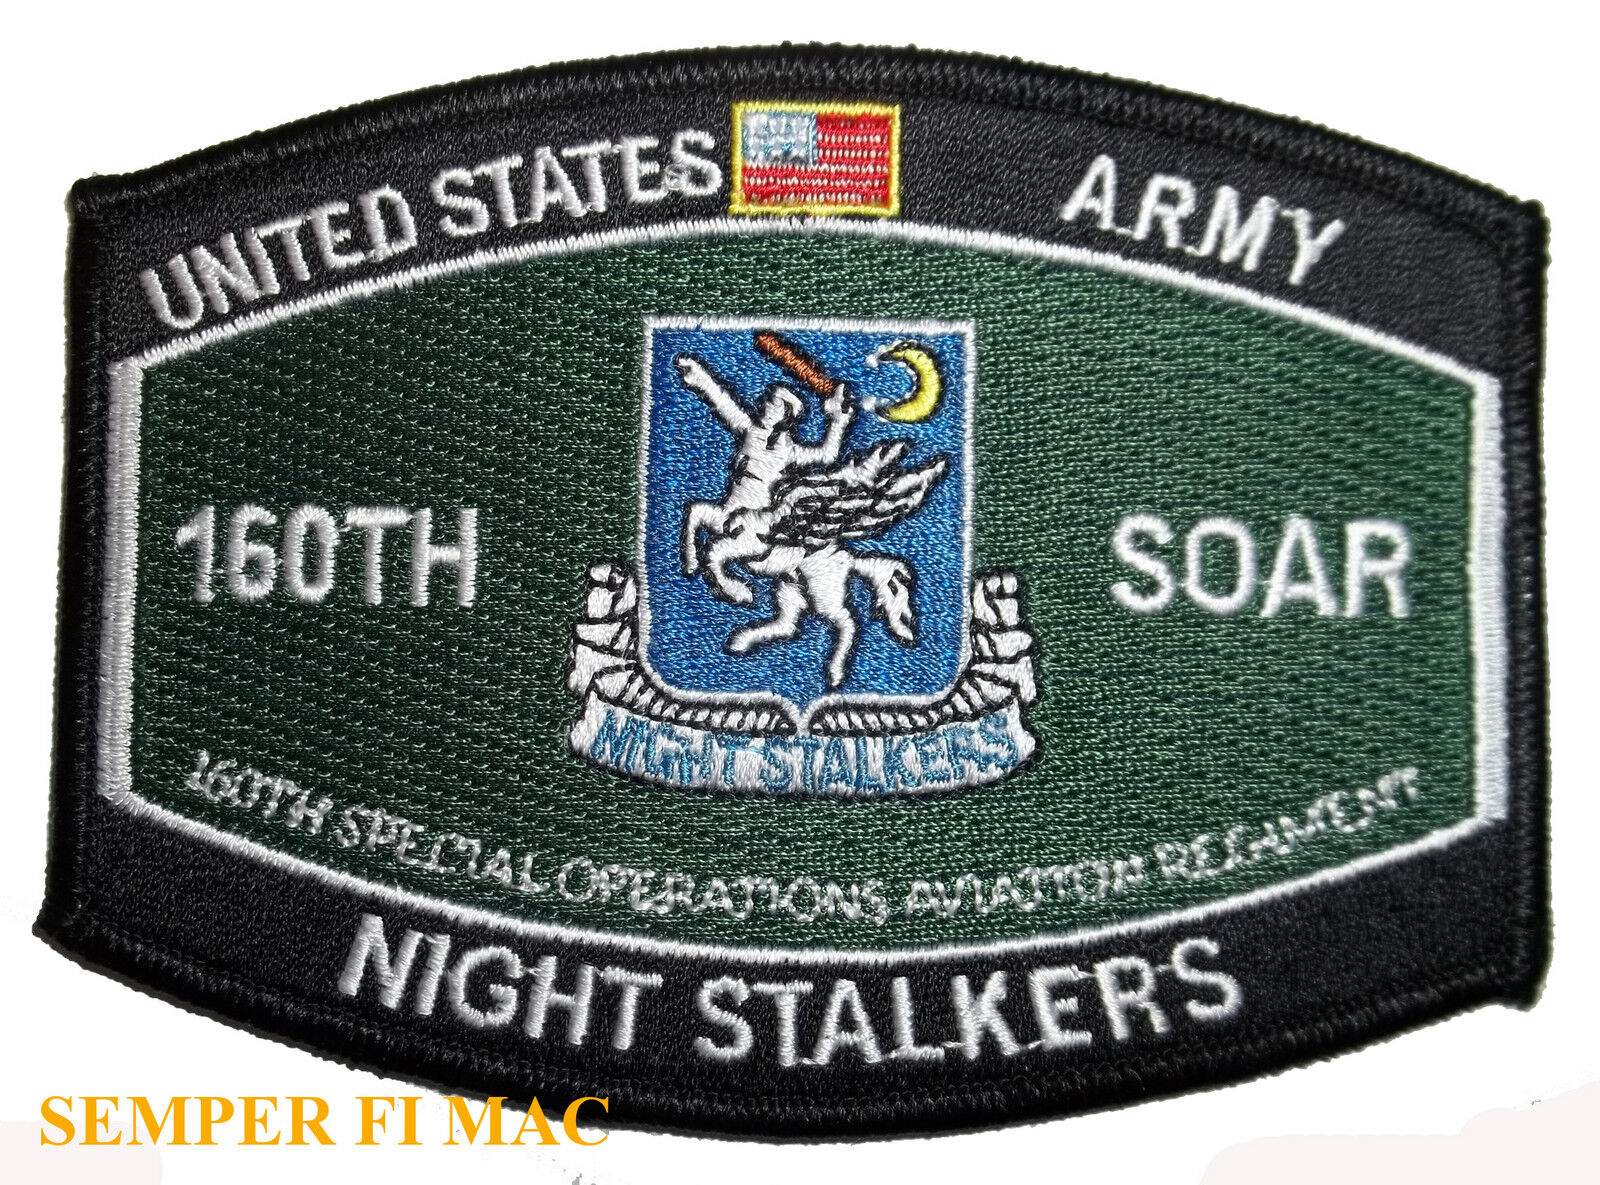 Details about 160th aviation night stalkers us army patch helicopter navy seal team bin laden